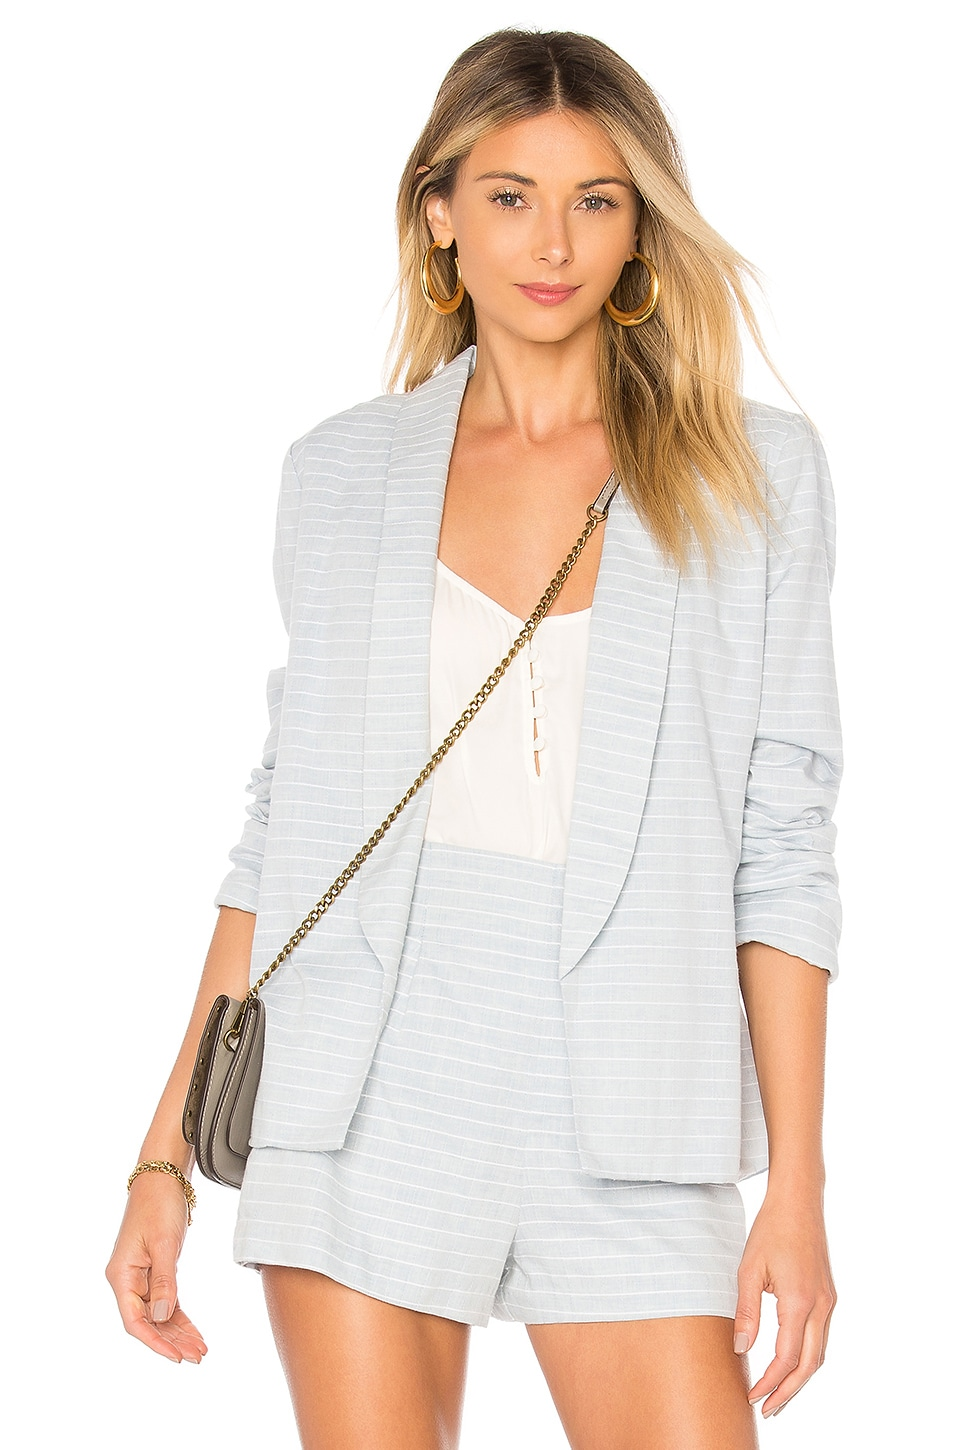 L'Academie The Carter Blazer in Chambray Stripe